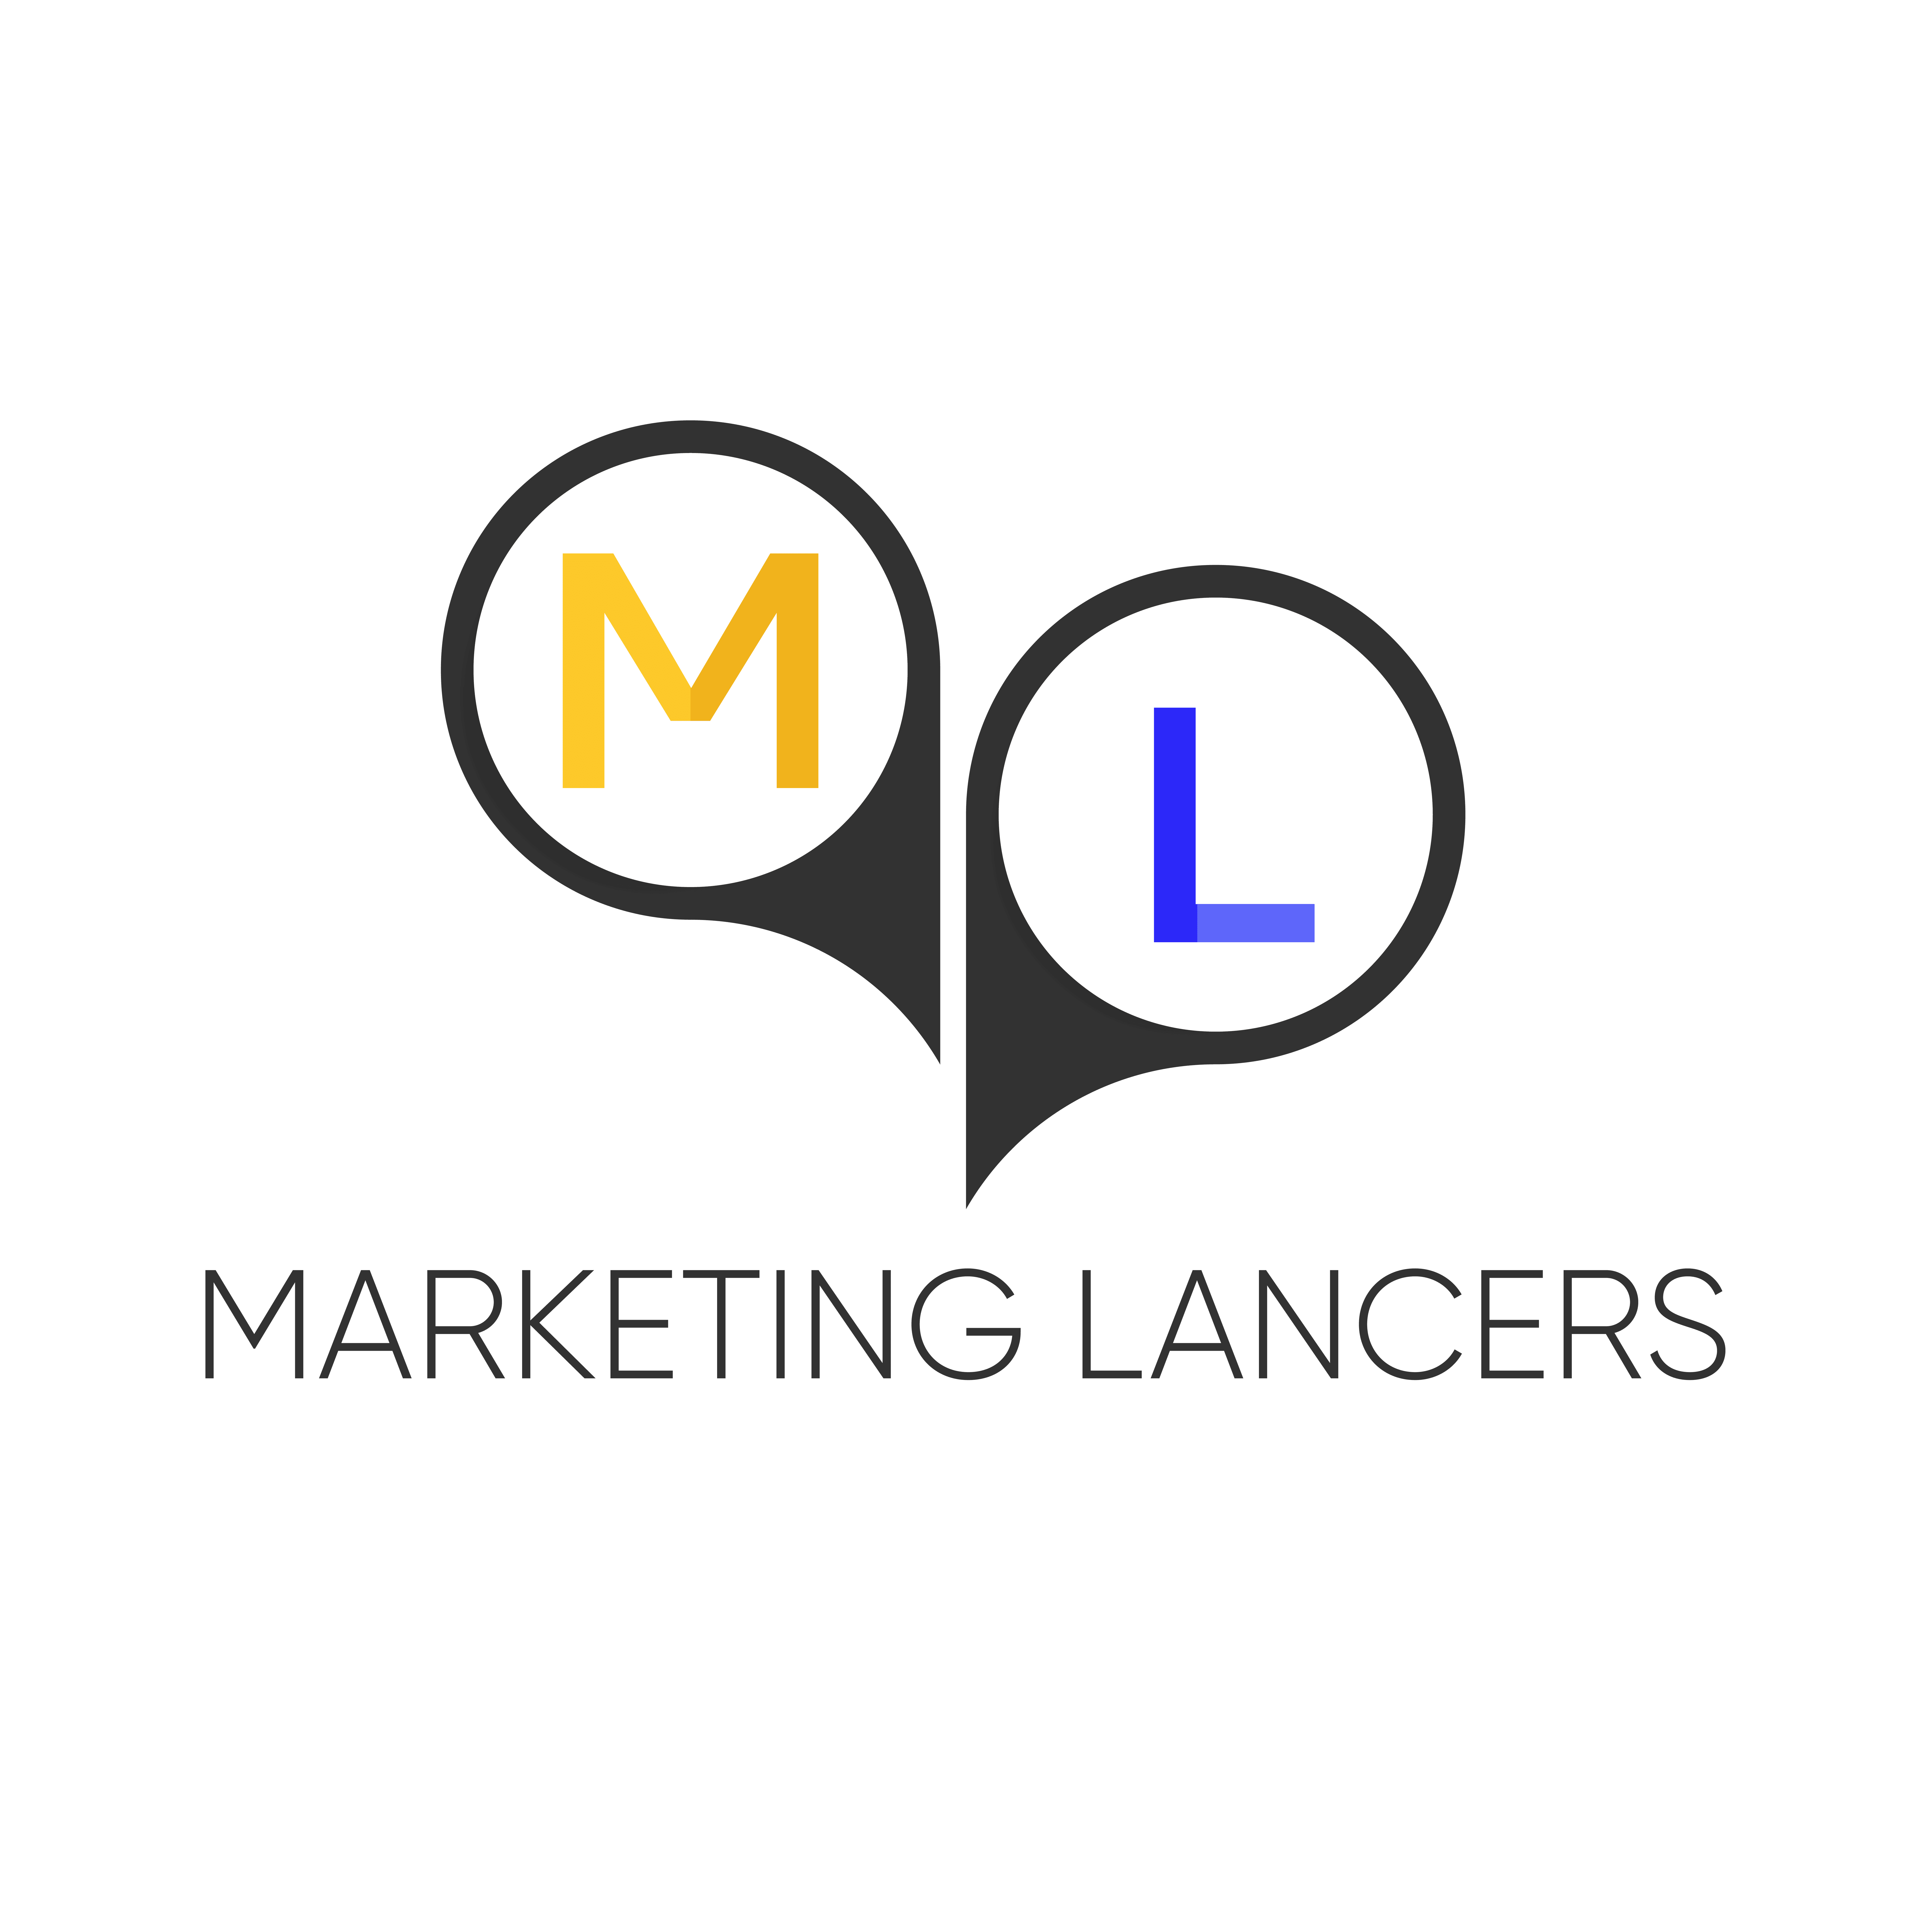 Marketing Lancers